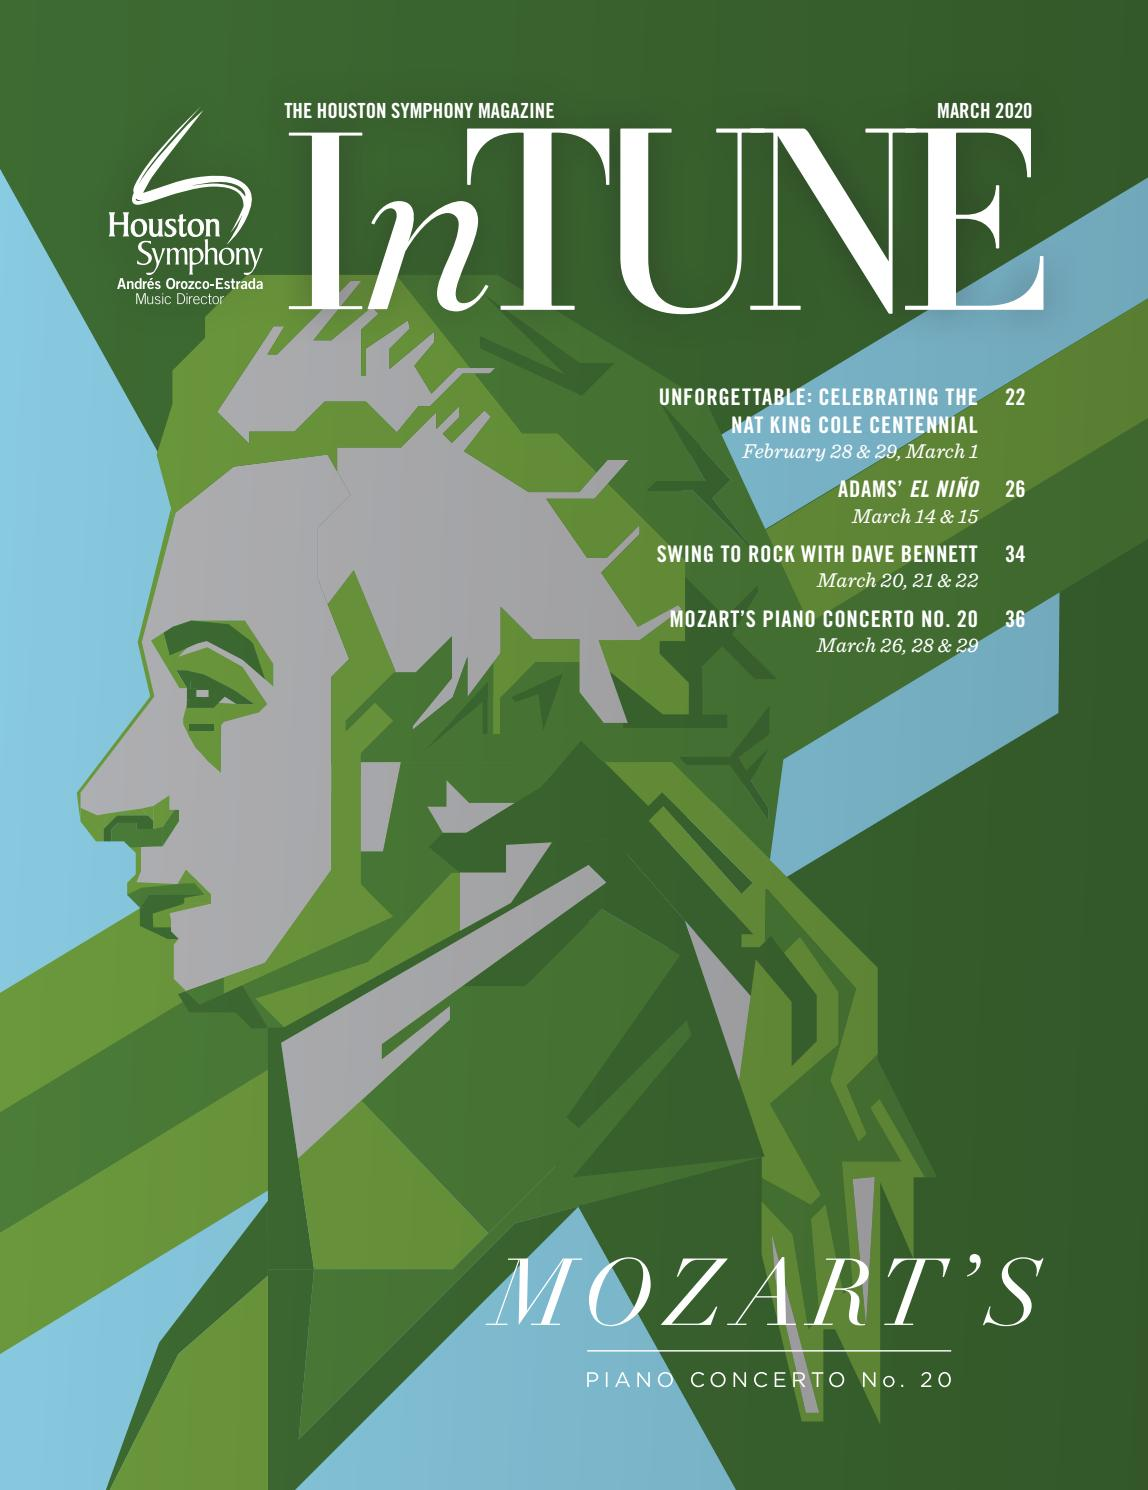 James Hornsby A Christmas Carol 2020 InTune — The Houston Symphony Magazine — March 2020 by Houston